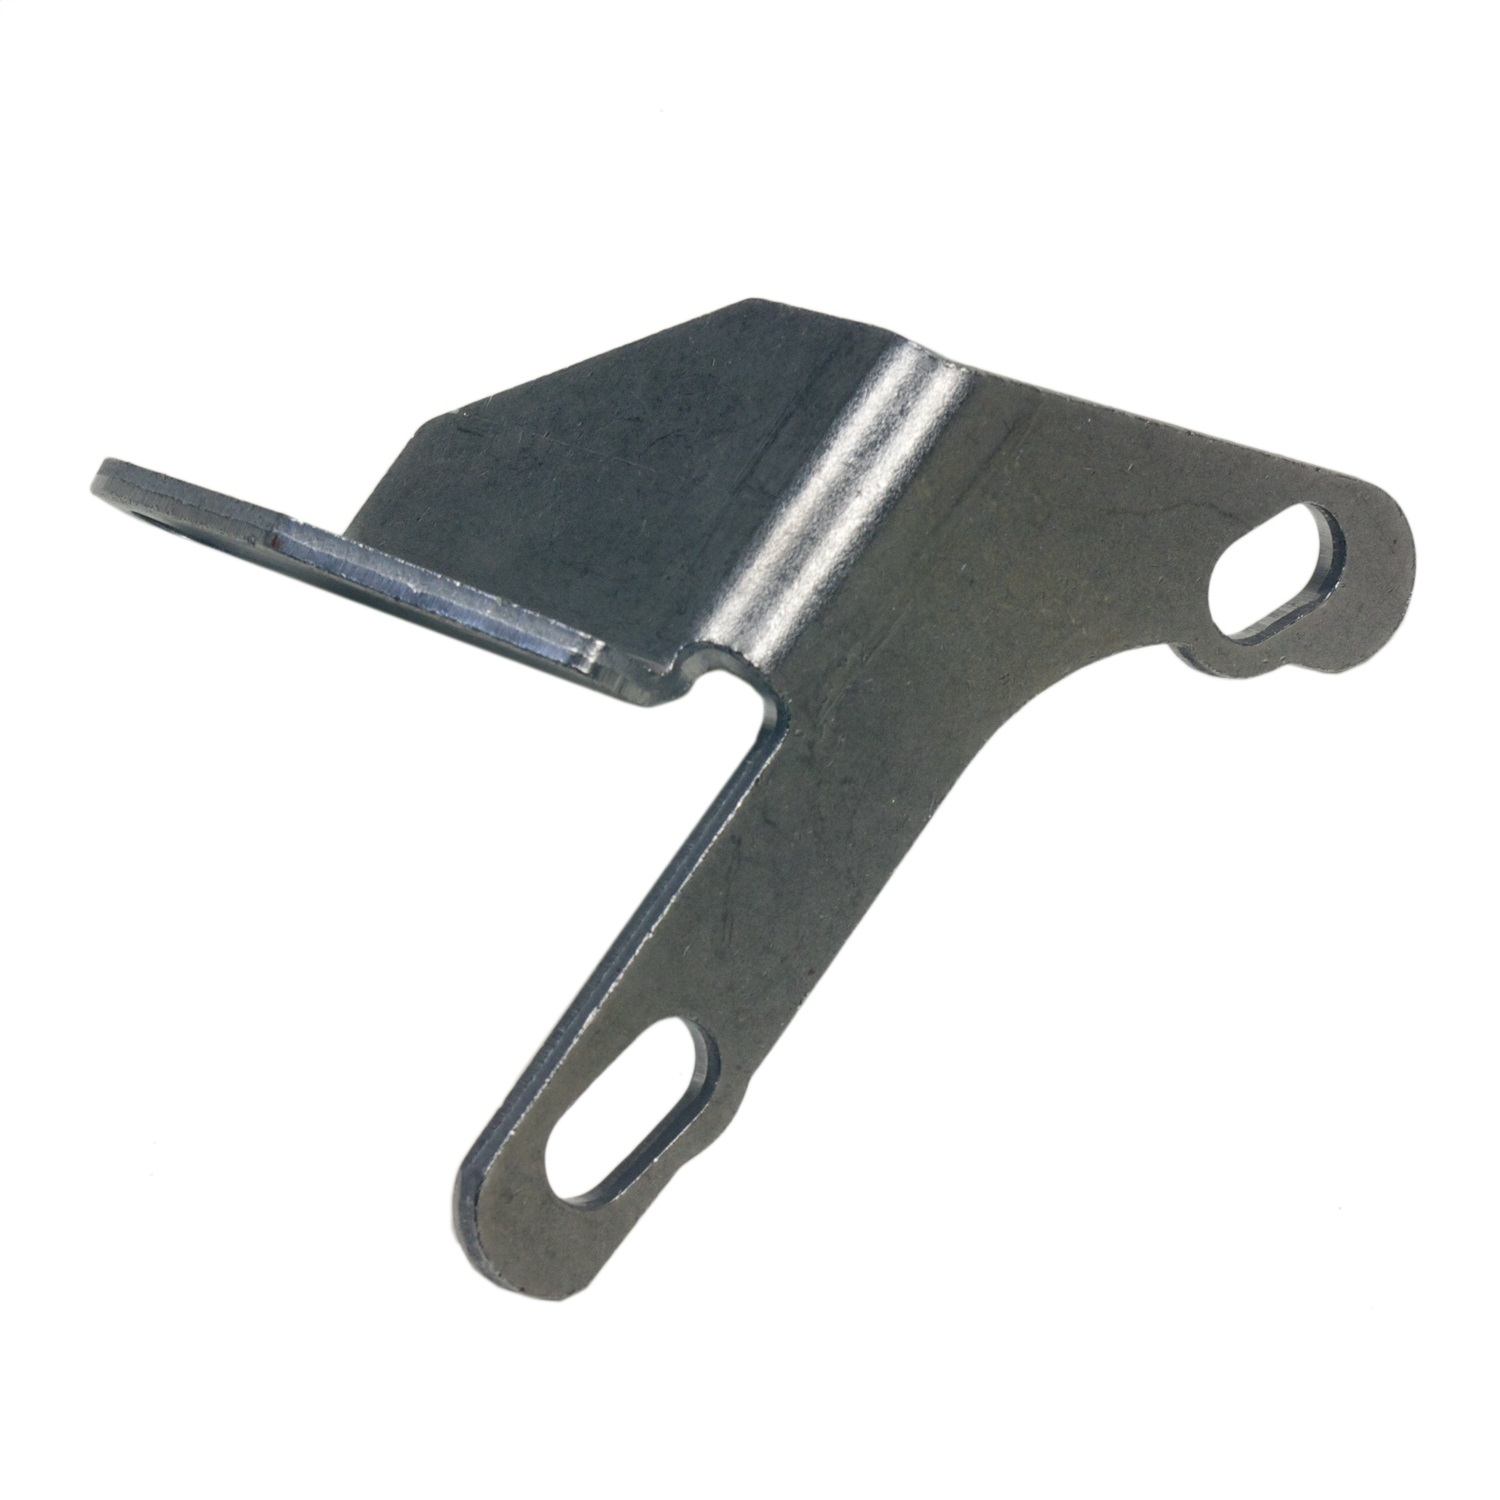 B&M 10494 CABLE BRACKET TF 727 REAR ENTRY CAB